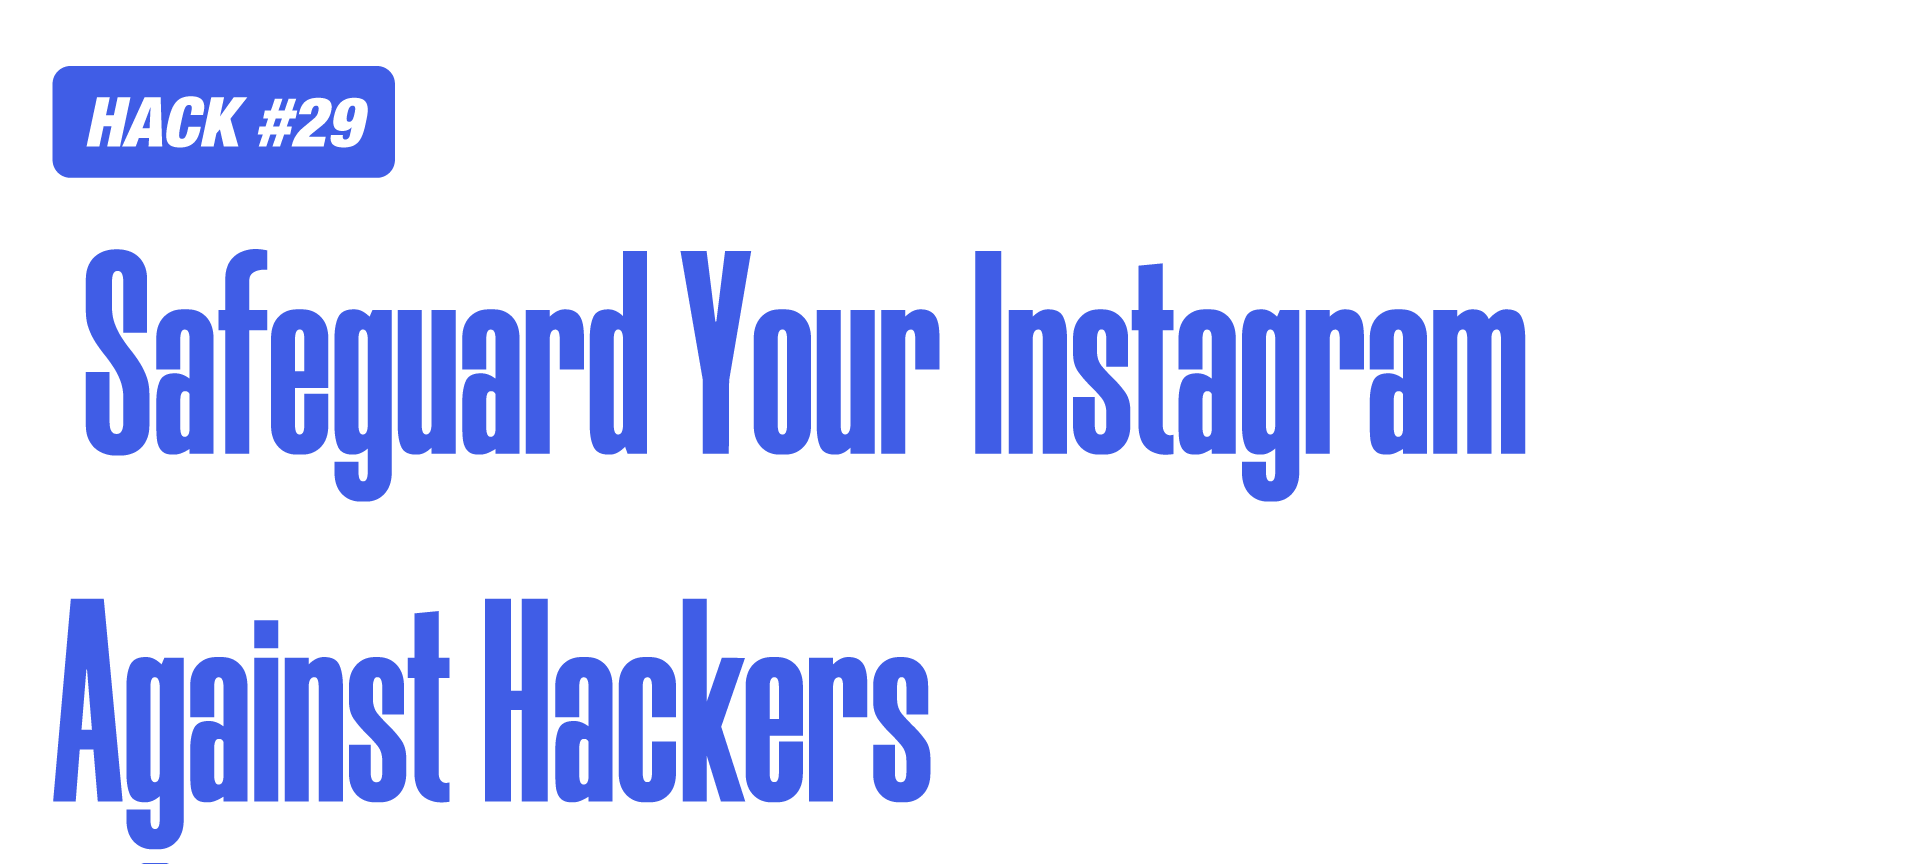 Instagram Marketing Hack for safeguarding account against hackers